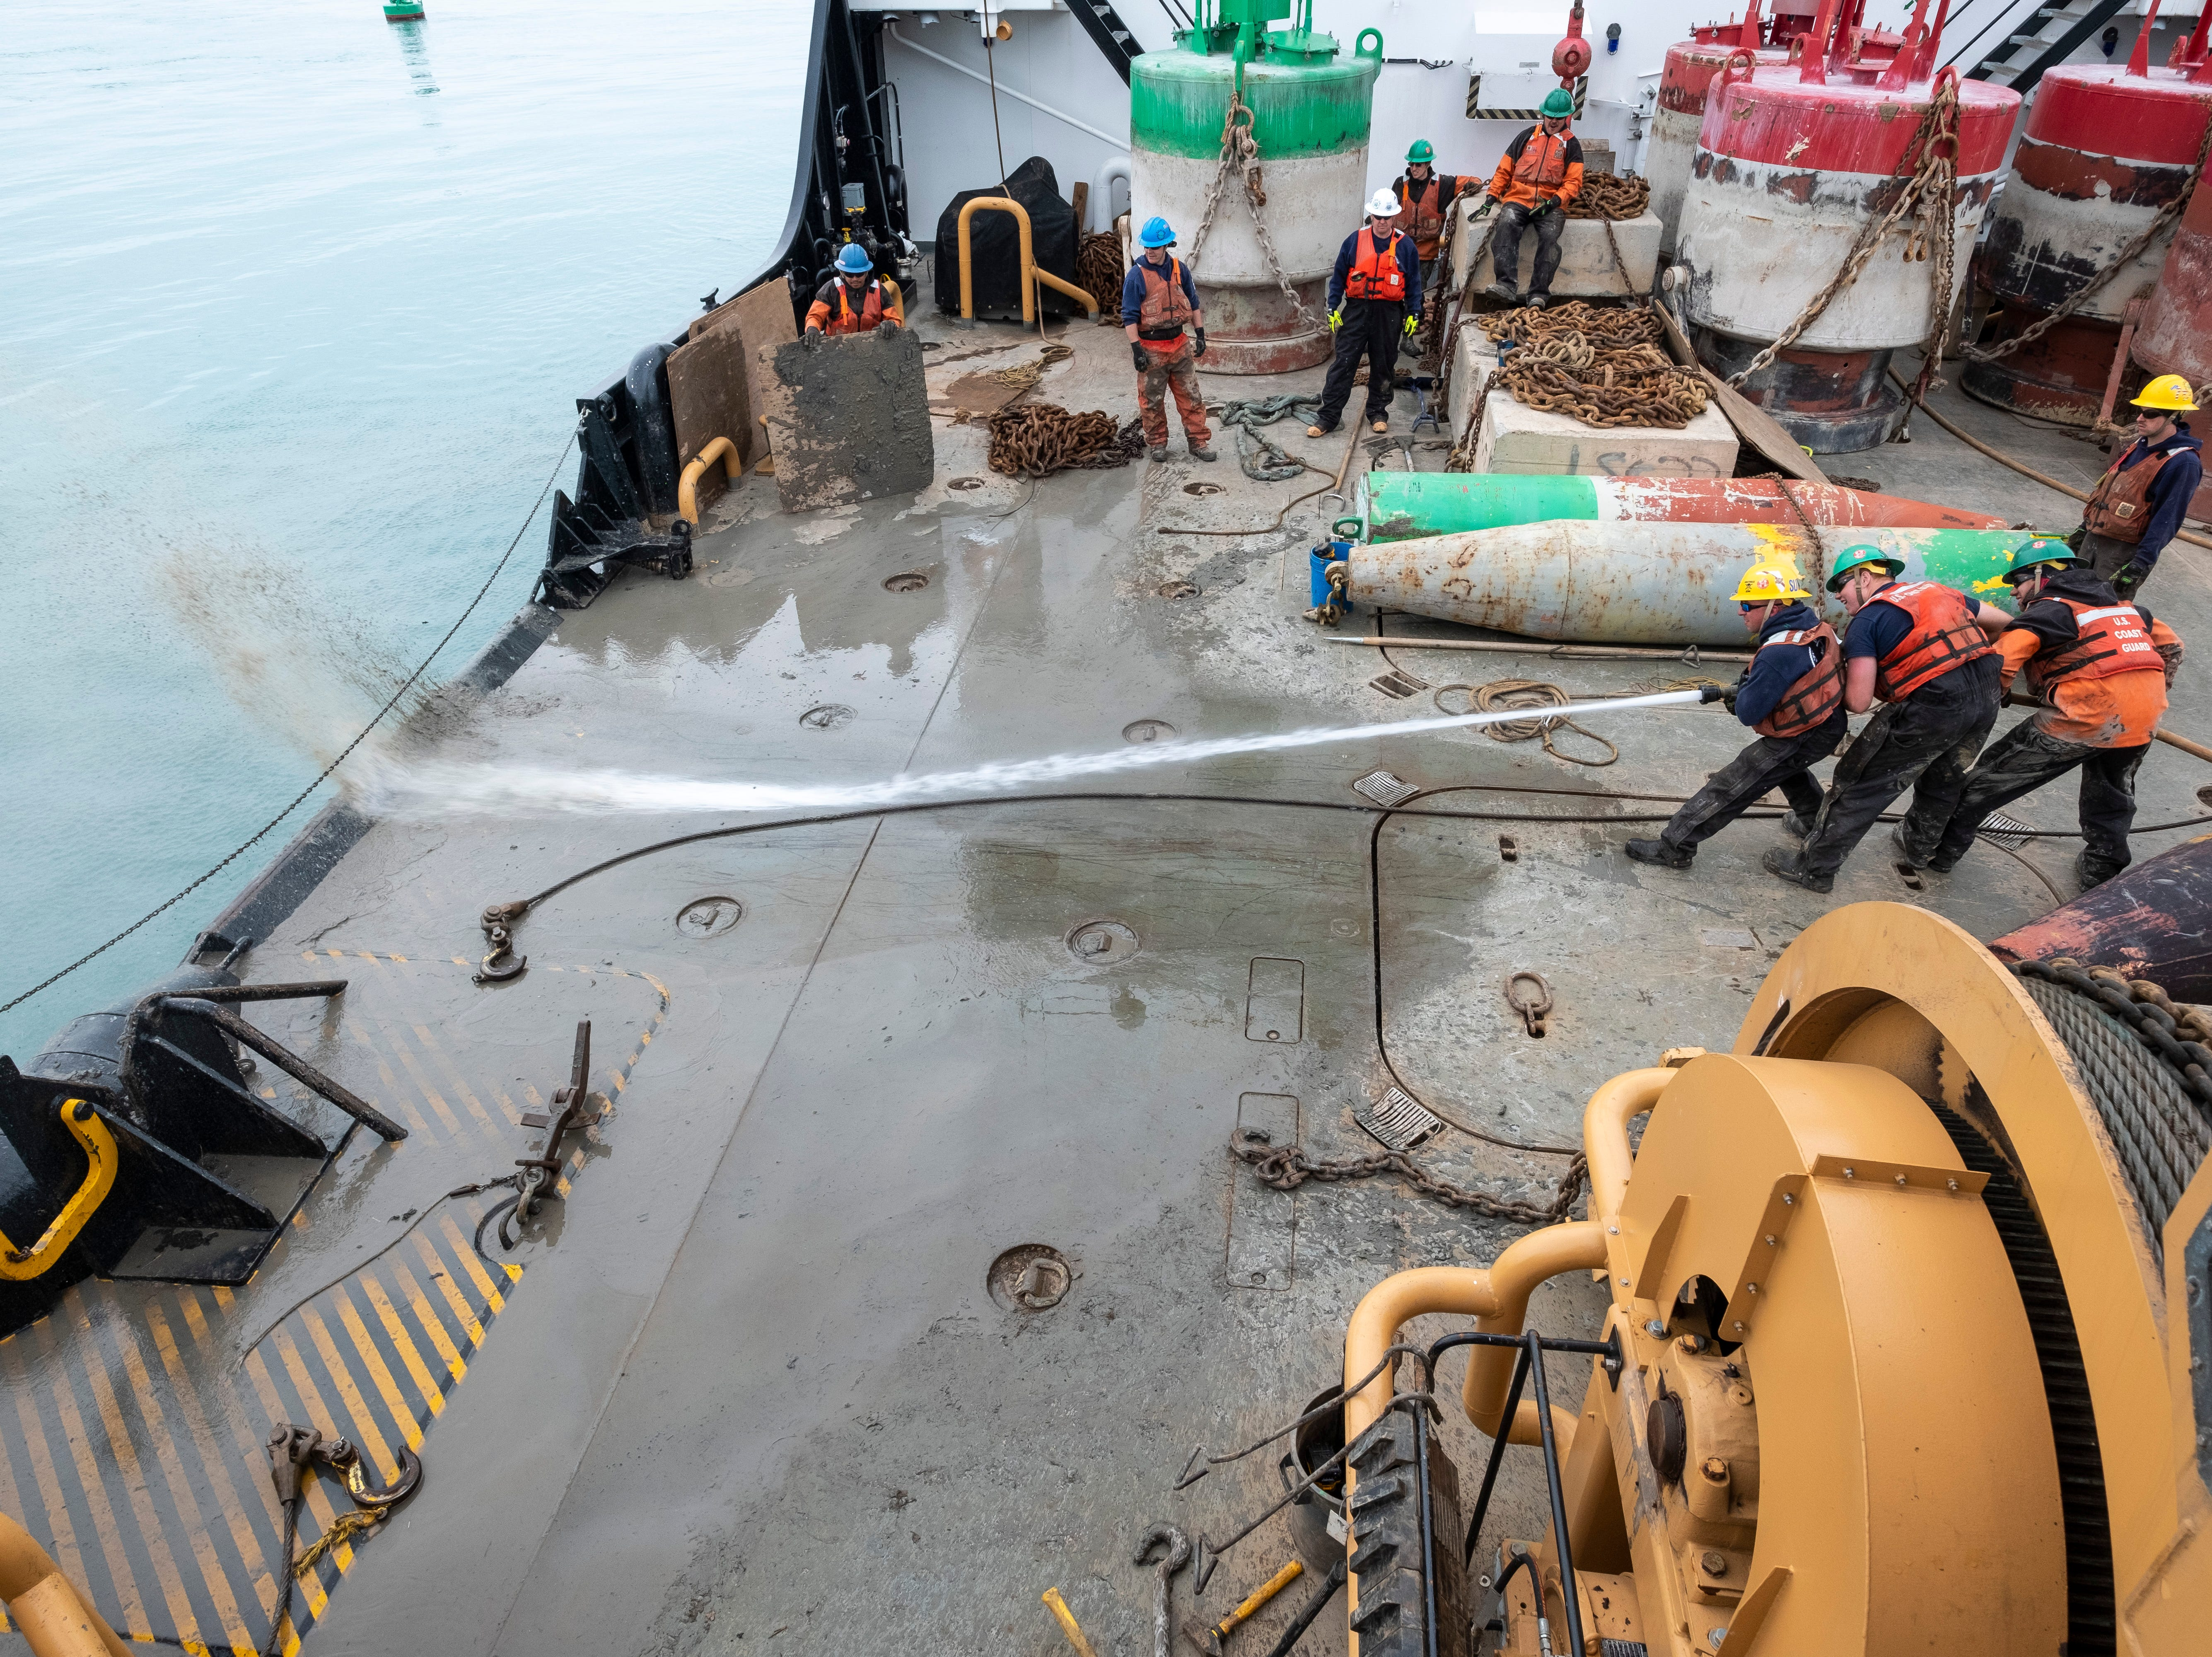 After the slab has been attached to a buoy and set back into the lake, crewmembers use a pressurized hose to clear mud off the buoy deck of the USCGC Hollyhock Thursday, April 25, 2019.